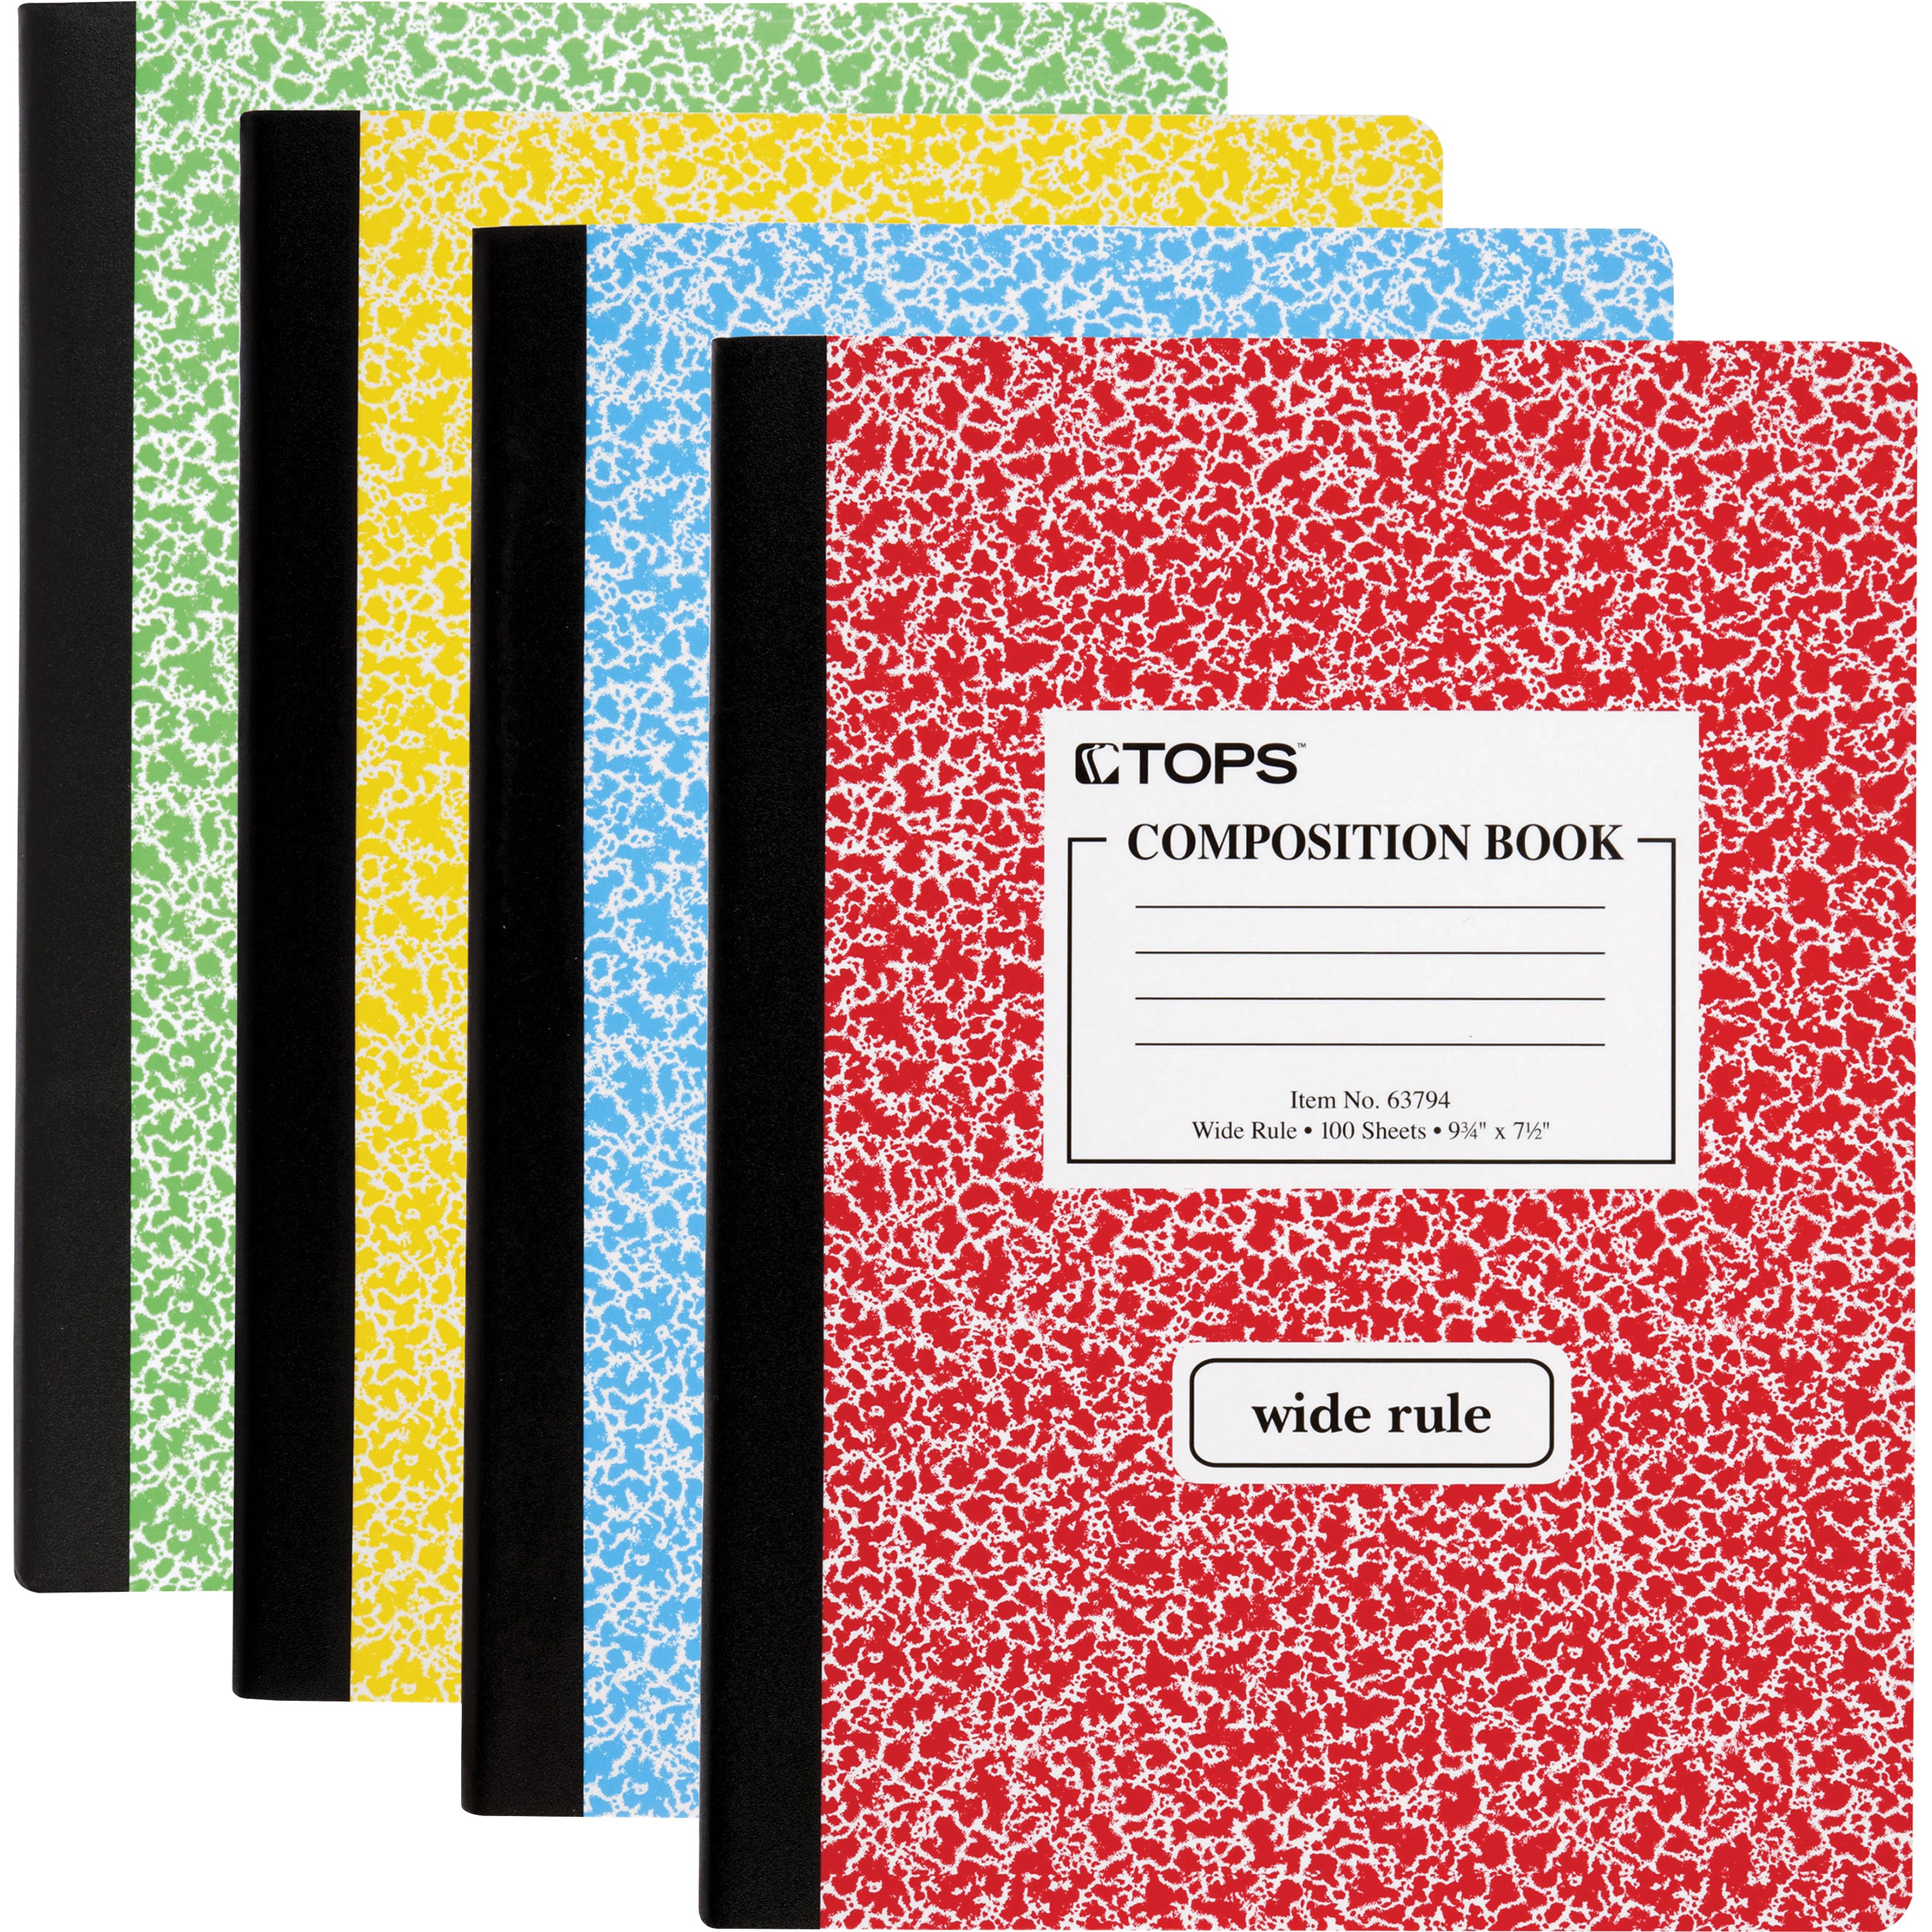 Oxford Composition Notebooks Wide Ruled Paper 63794 Colors May Vary 12 per Pack 100 Sheets Assorted Marble Covers 9-3//4 x 7-1//2